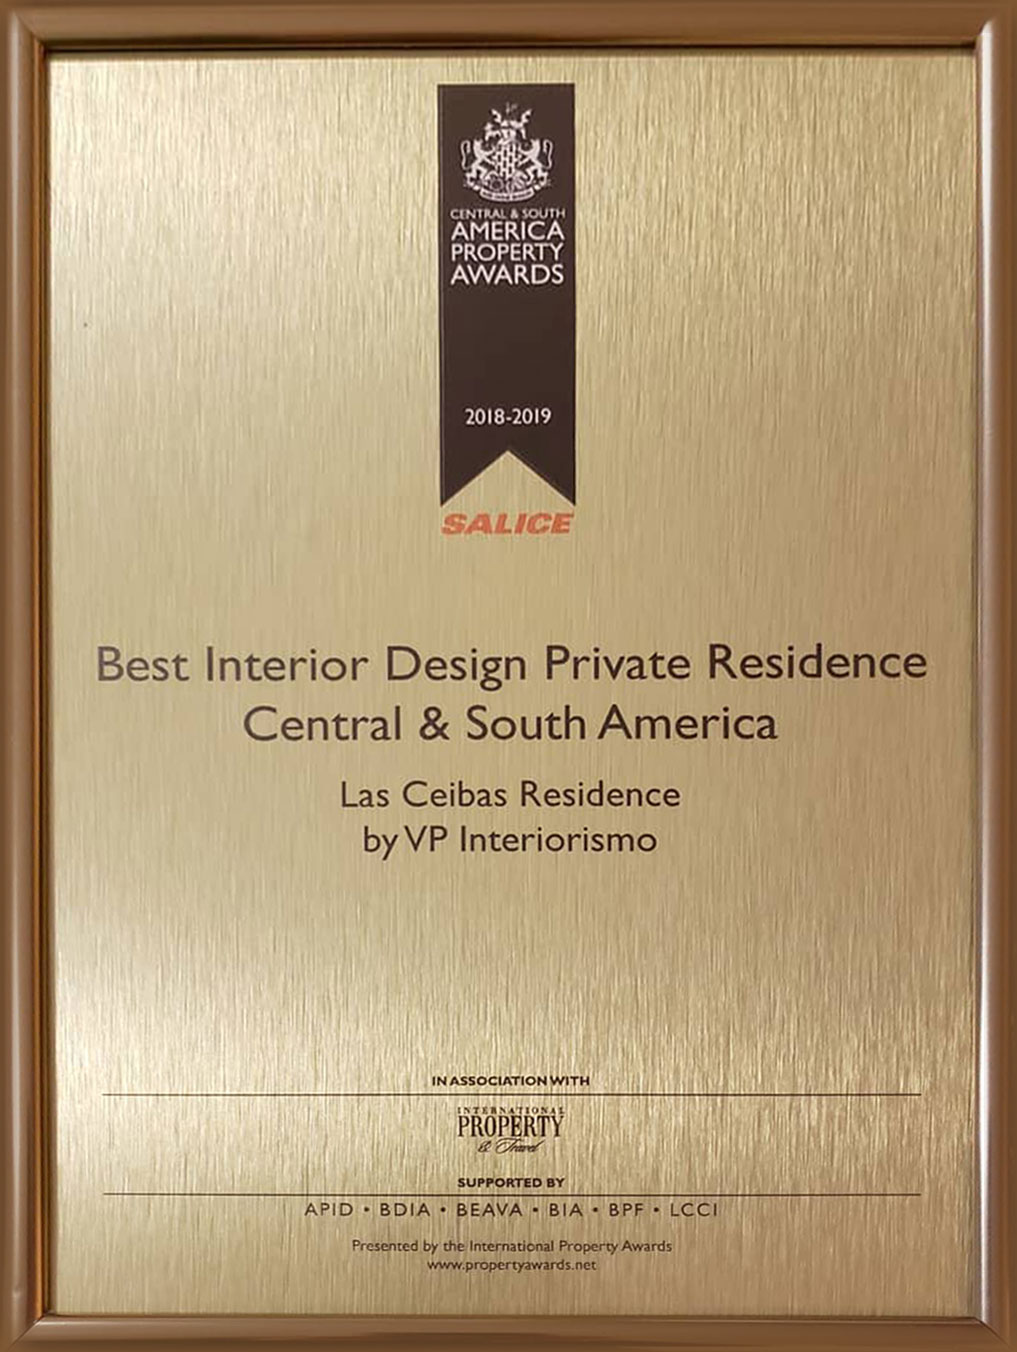 Best Interior Design Private Residence Central & South America